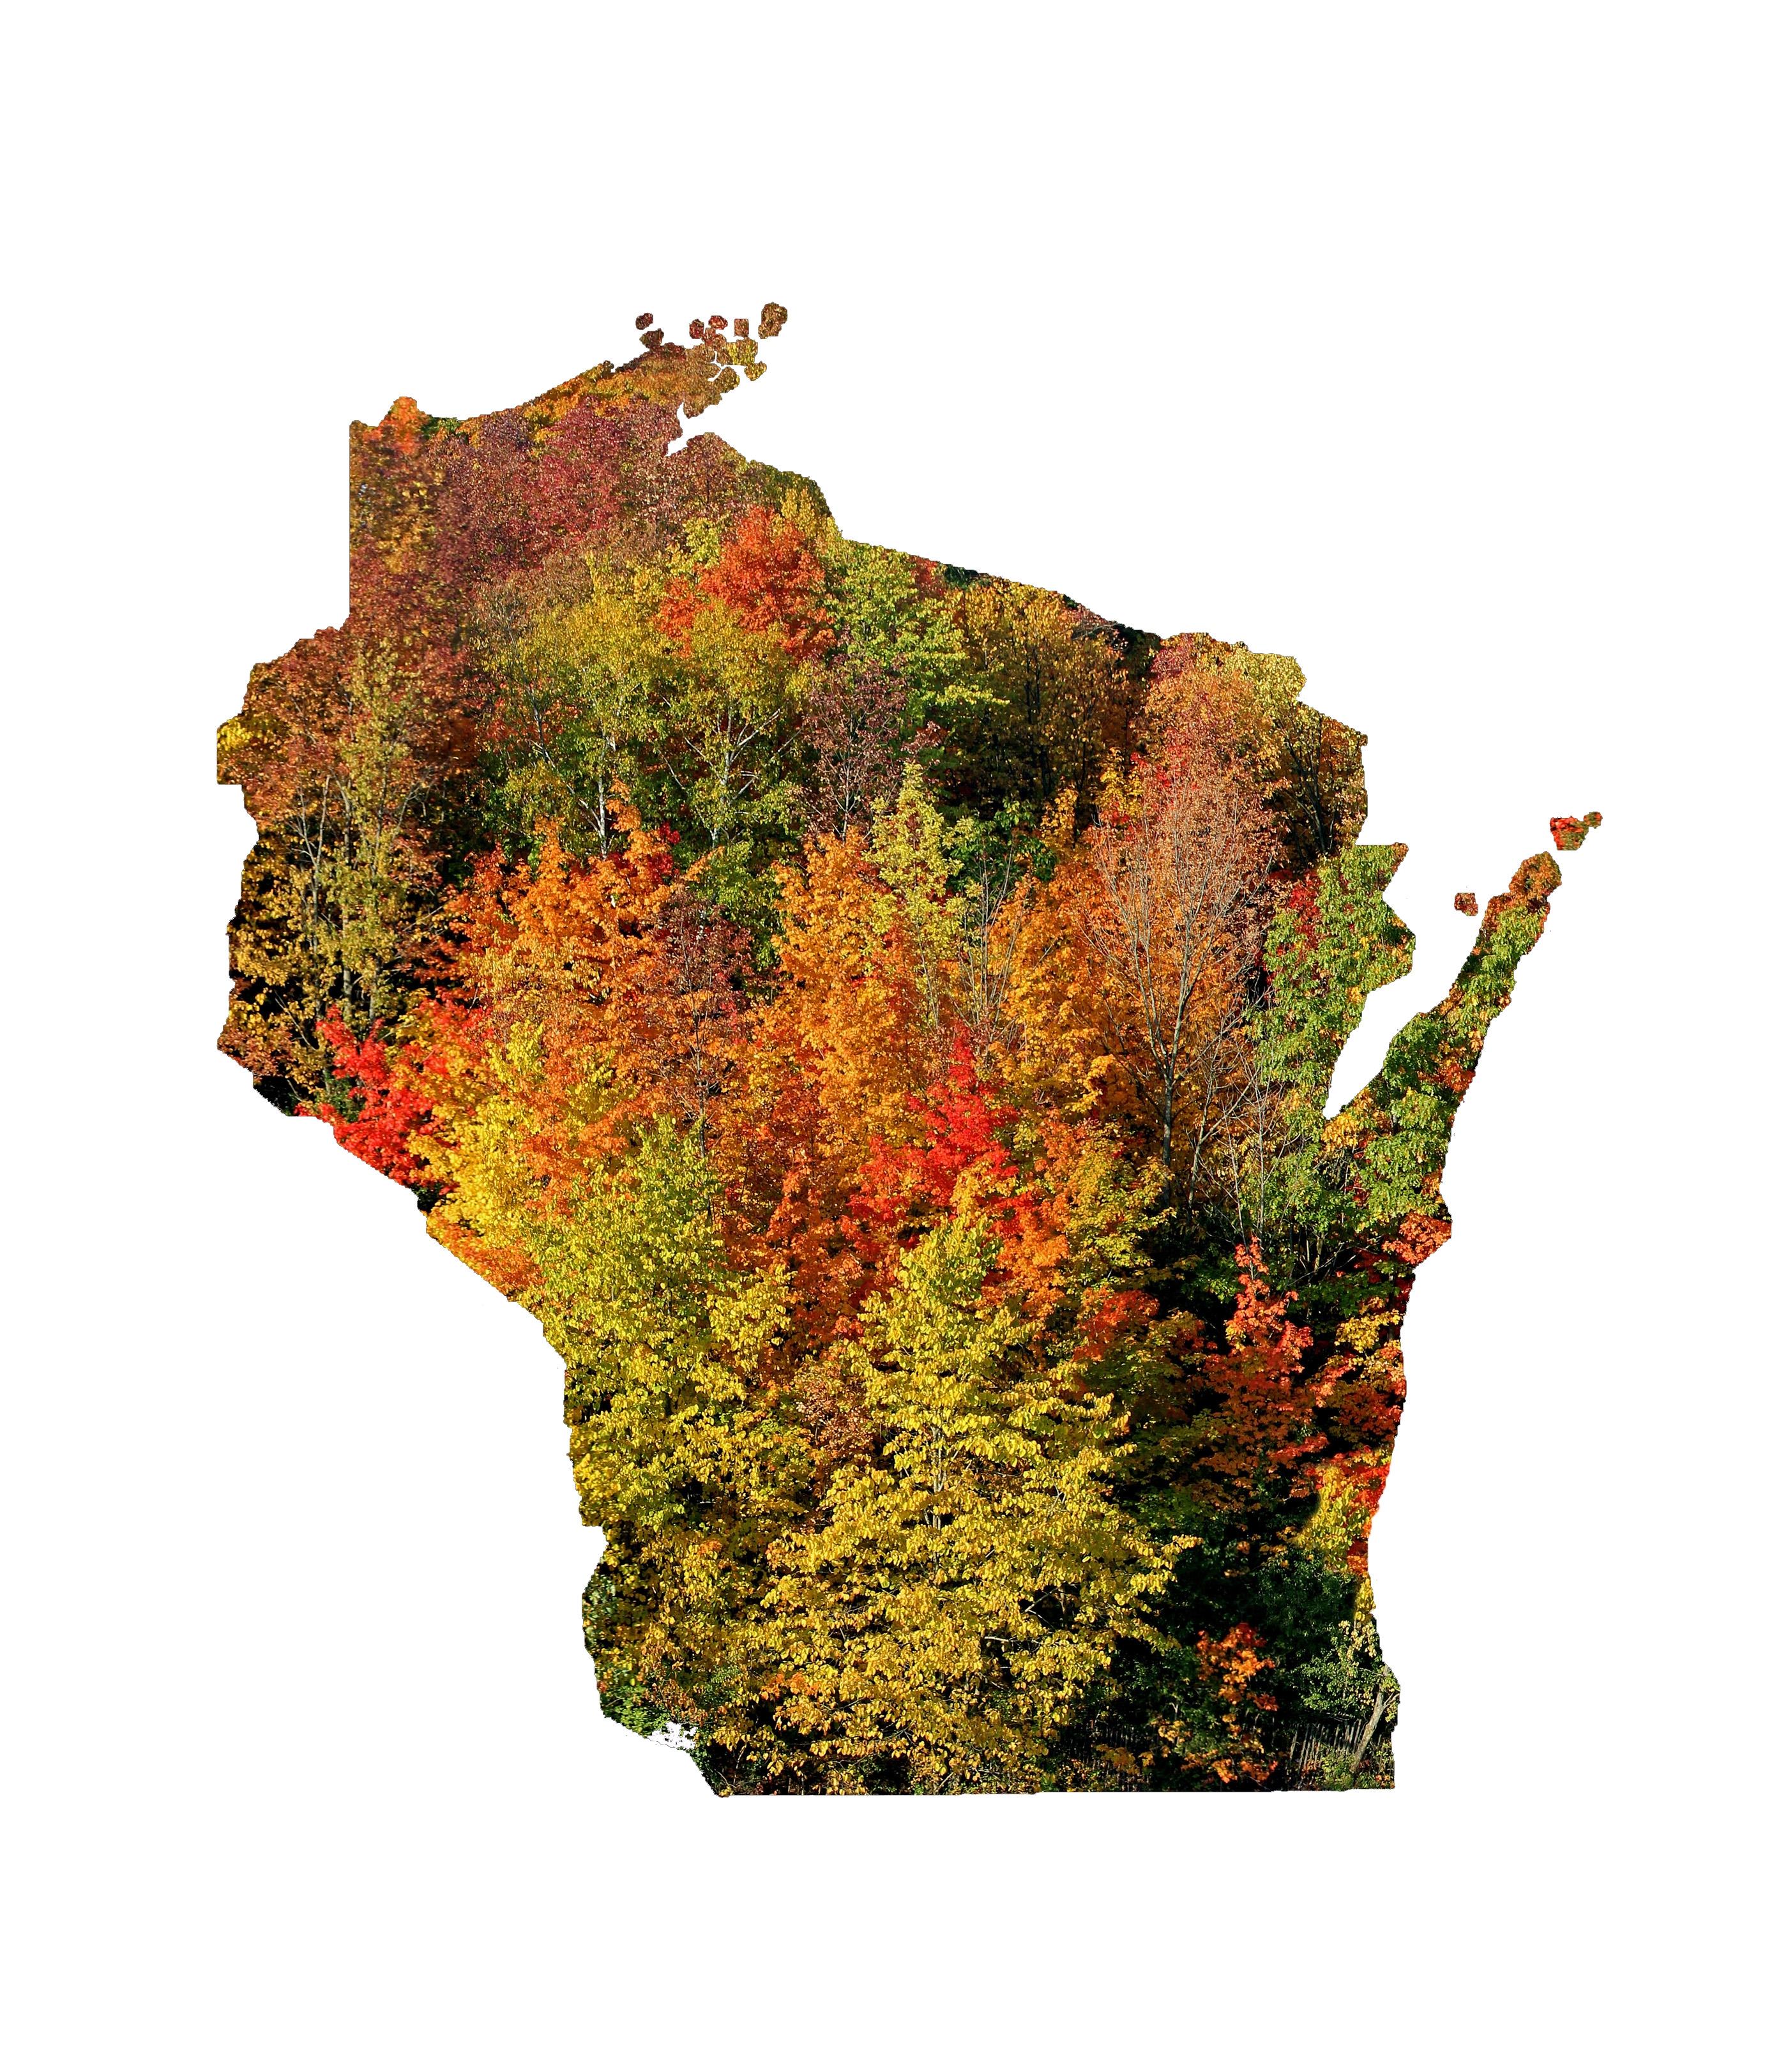 Wisconsin state shape with fall colors